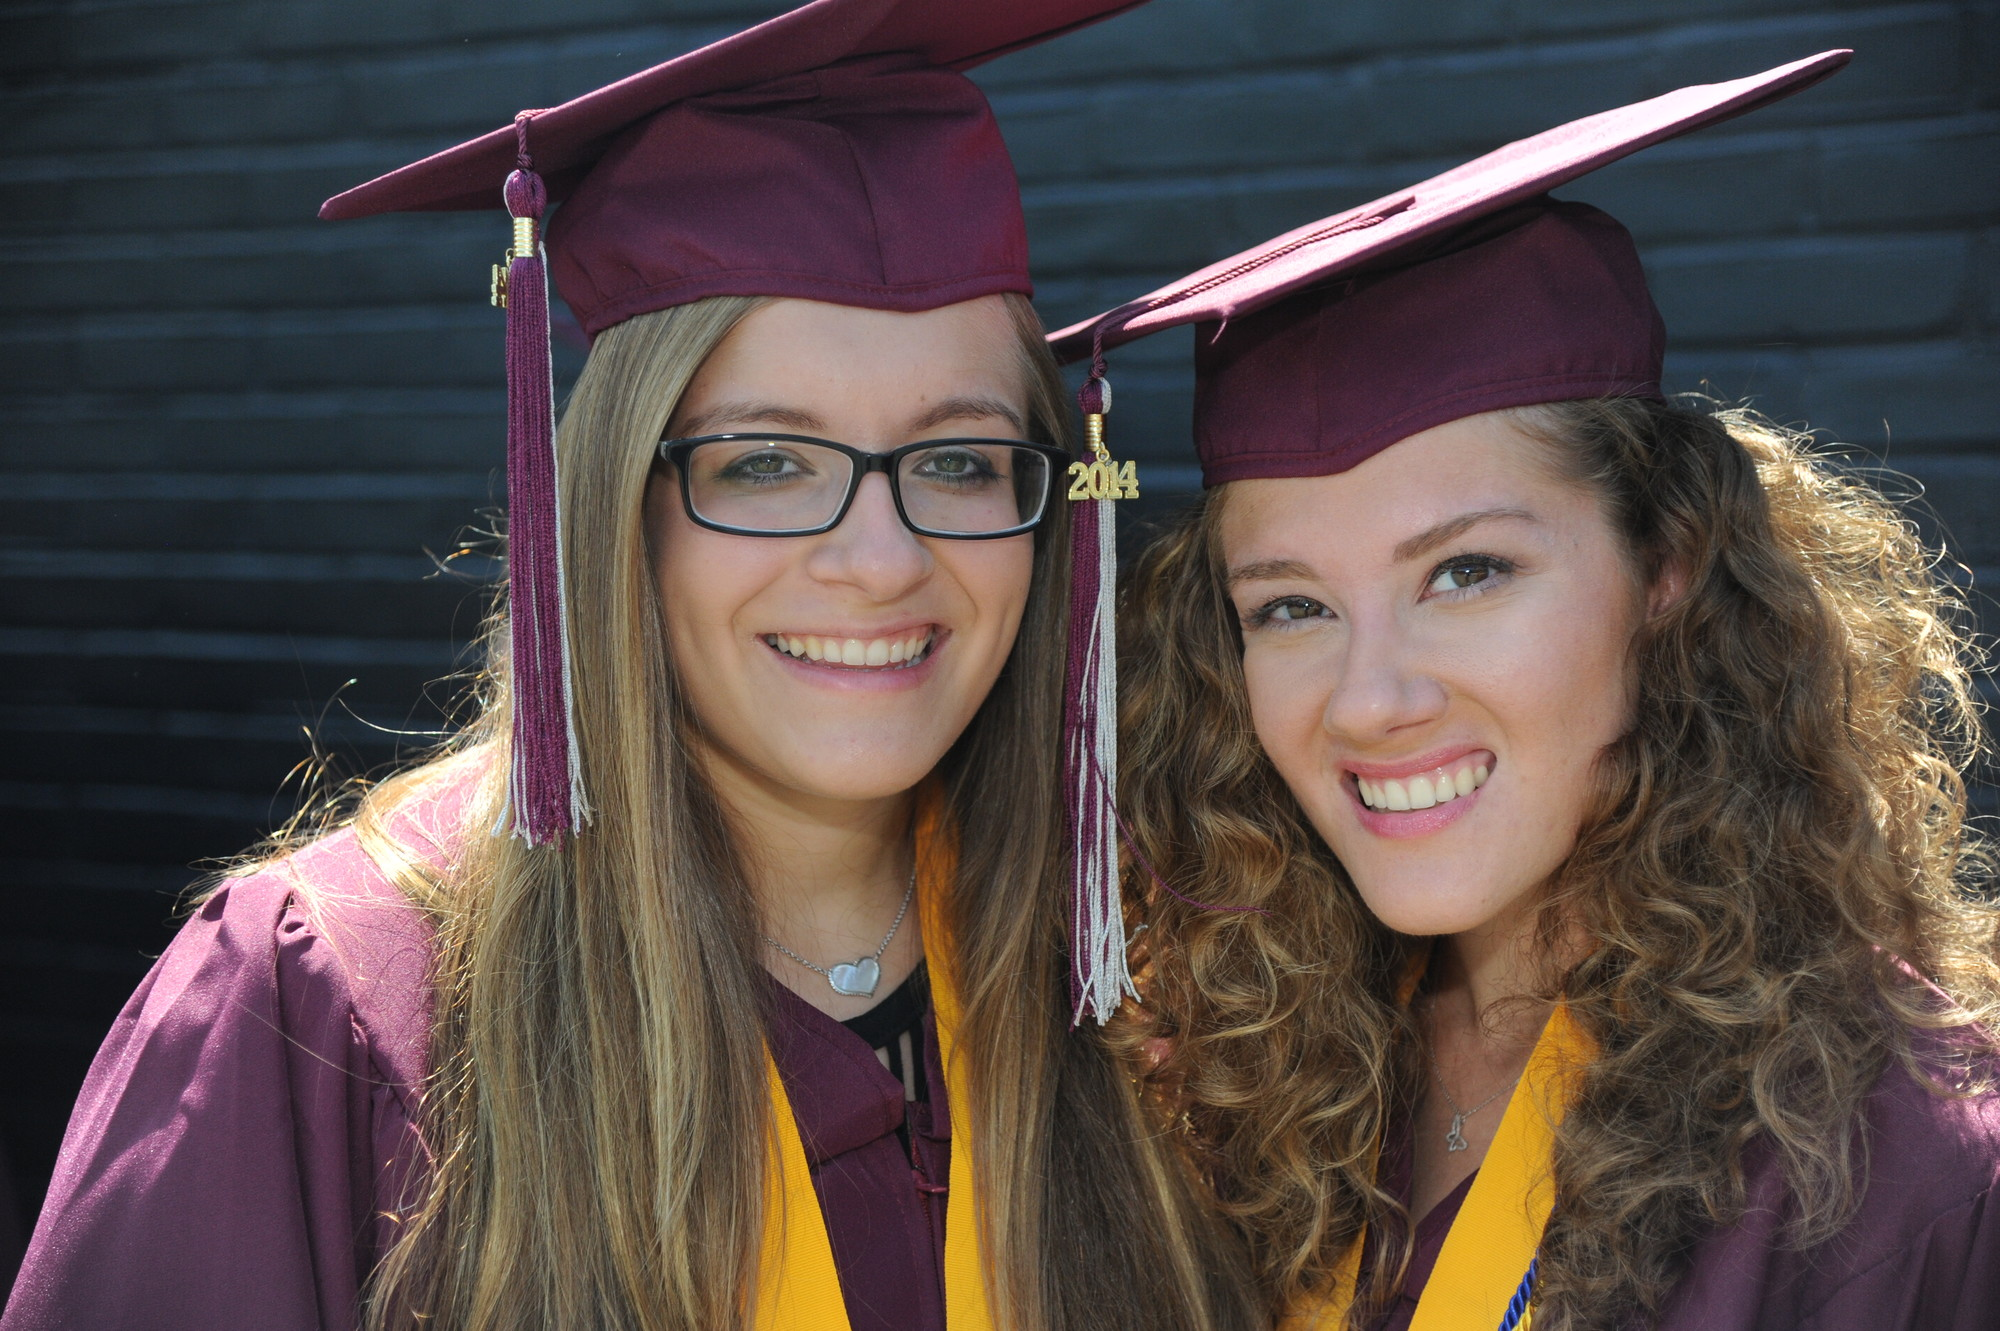 Erica and Arianna Miller were all smiles on graduation day.